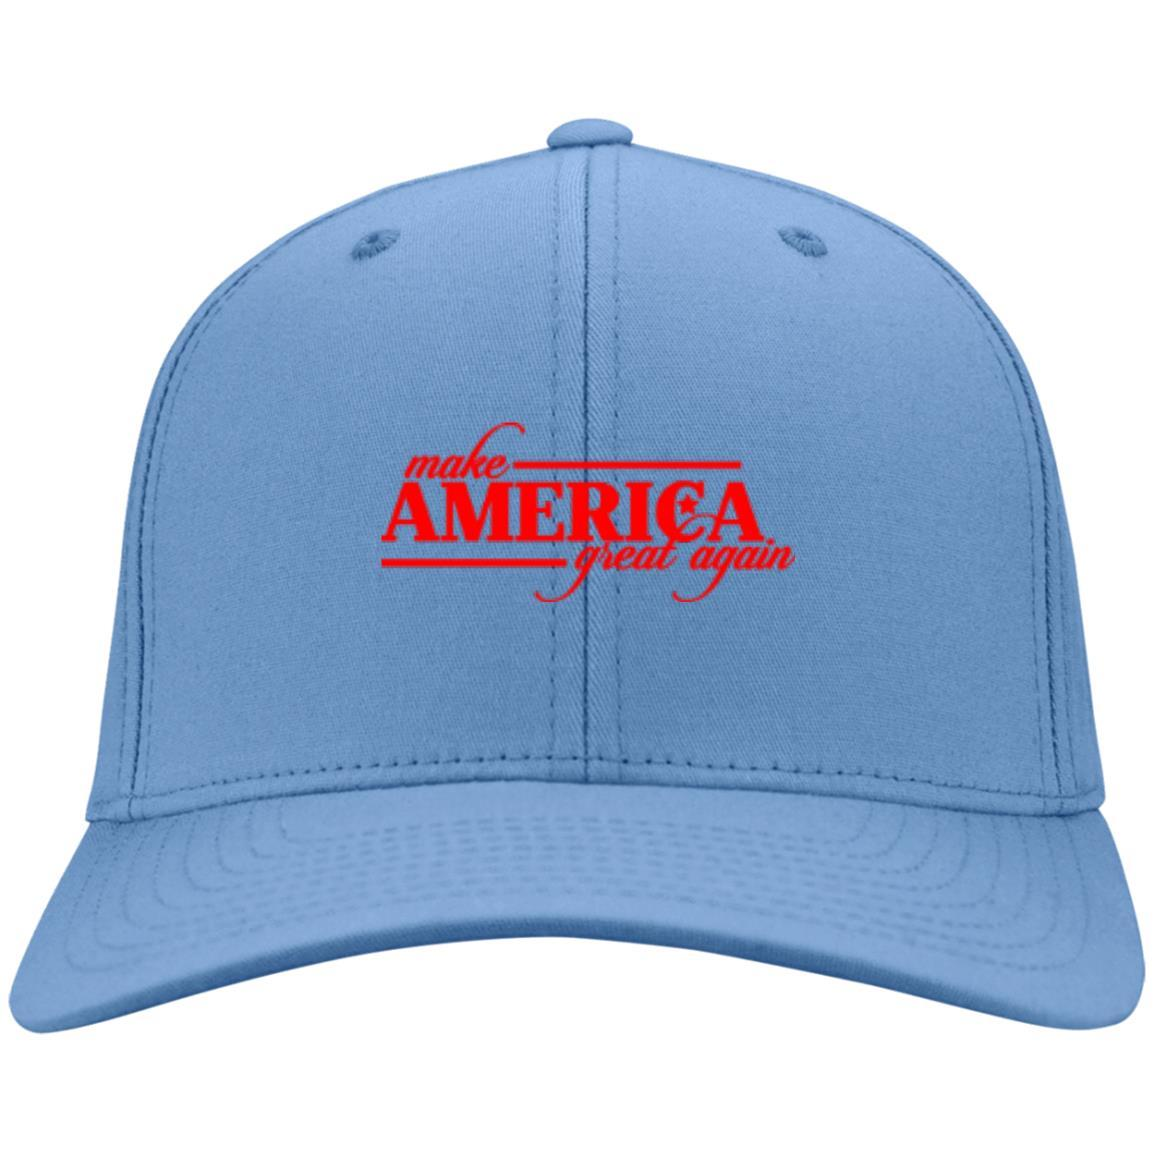 Make America Great Again - Port & Co. Twill Cap Carolina Blue